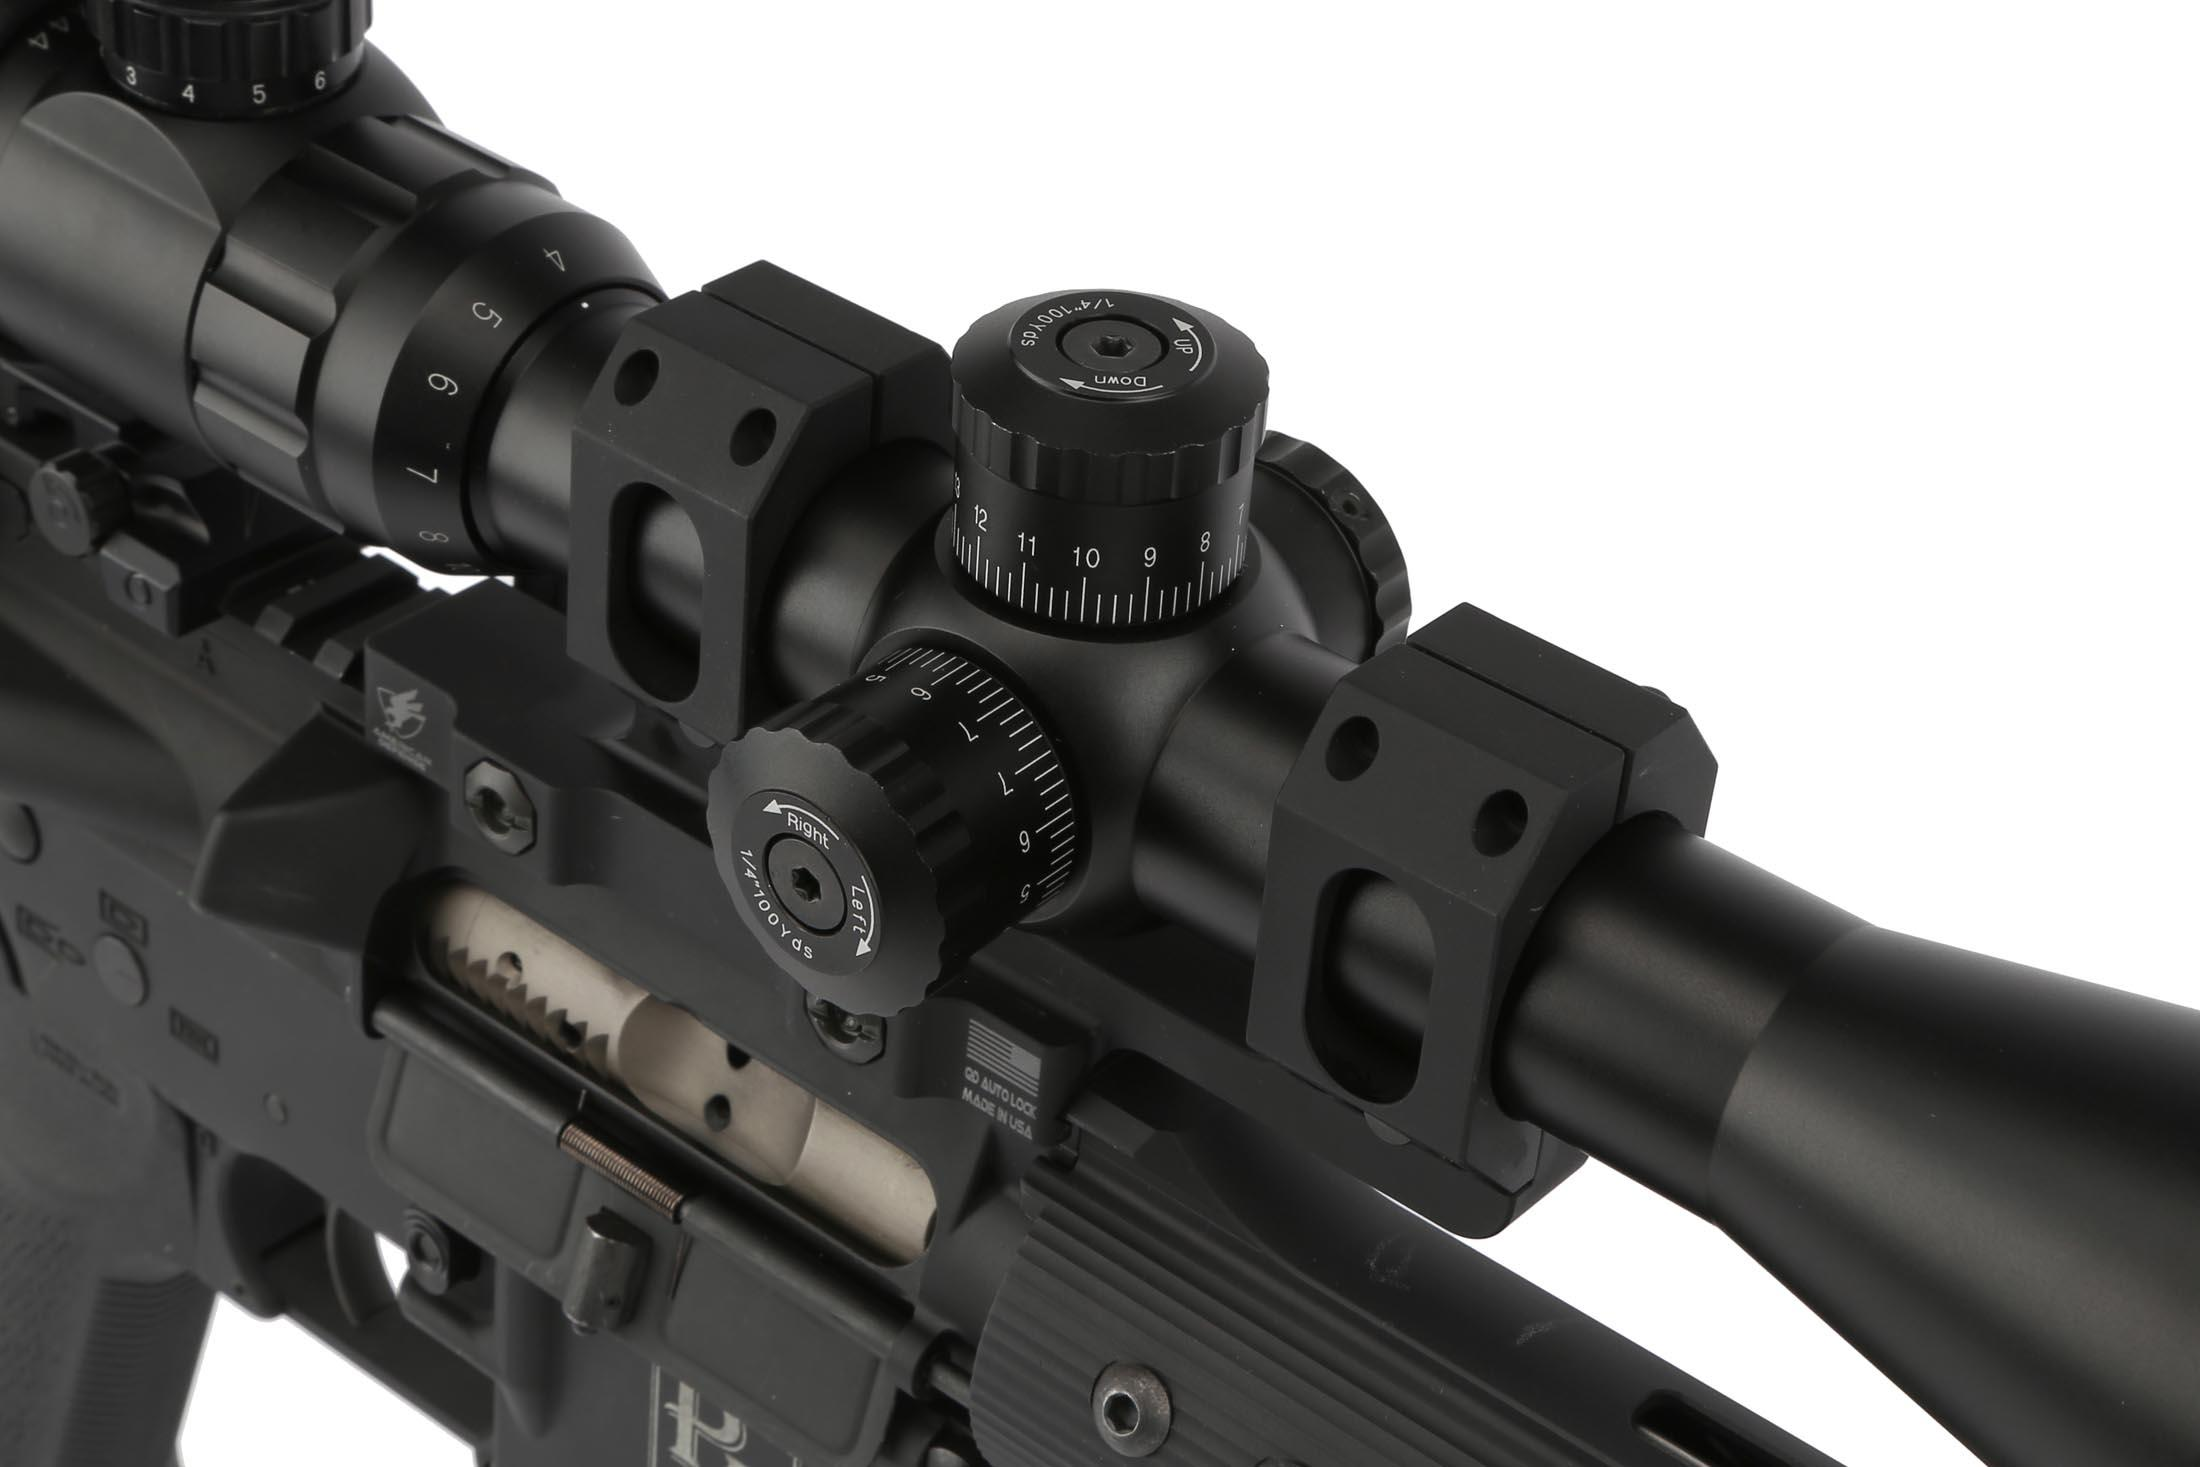 Primary Arms Classic Series 4-16x44mm SFP Rifle Scope - Illuminated MIL-DOT